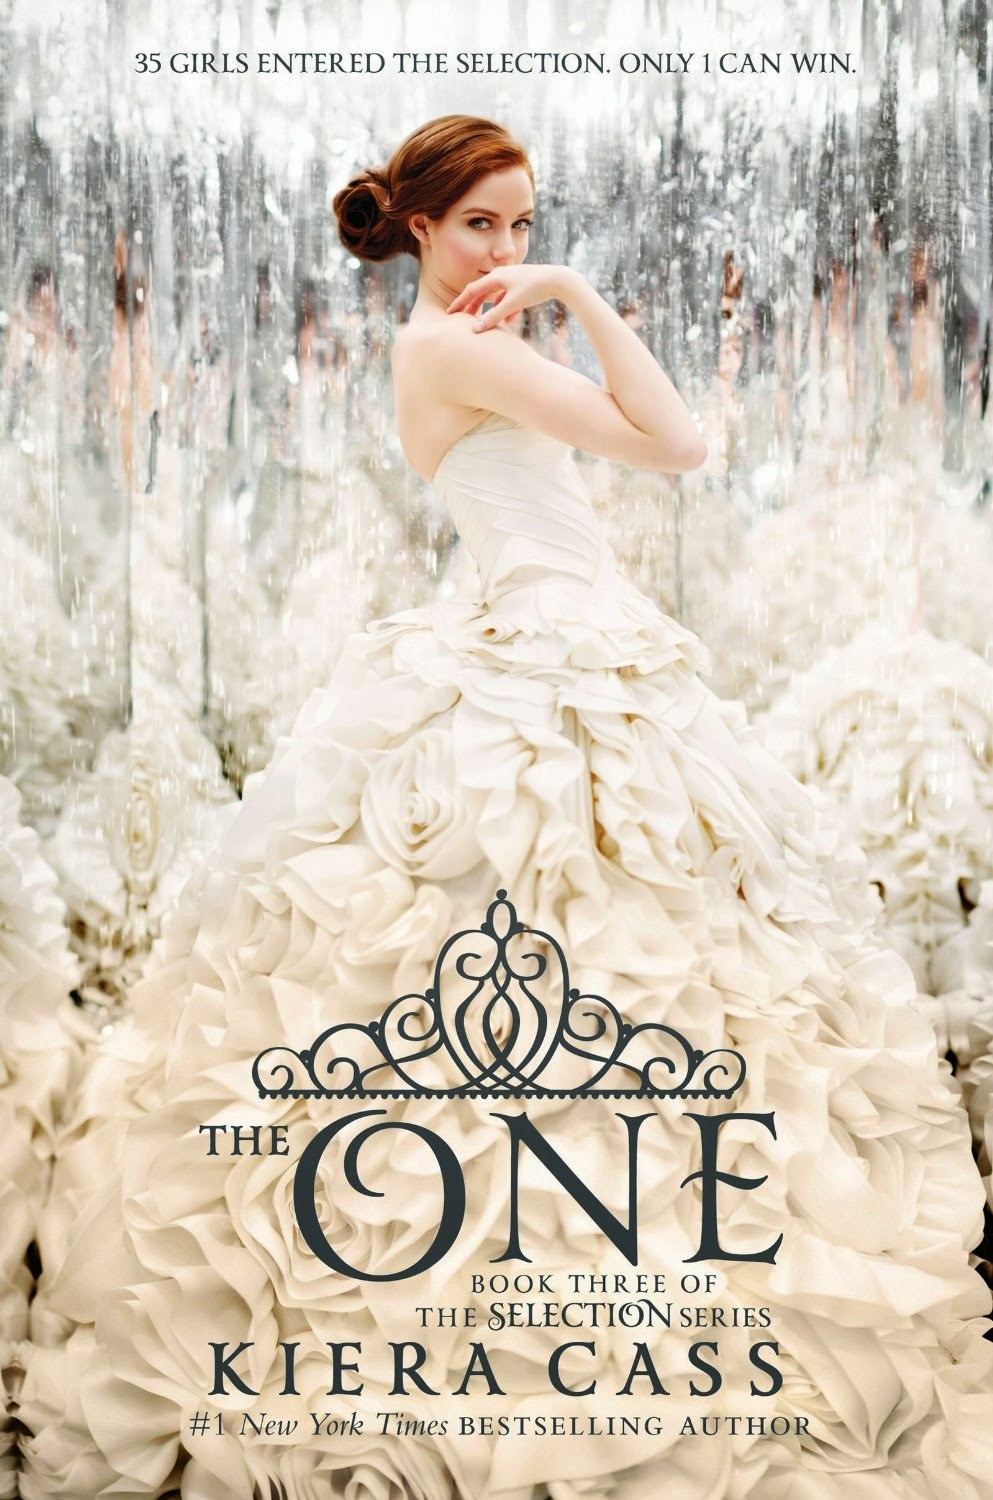 [eBook] - The One by Kiera Cass Download